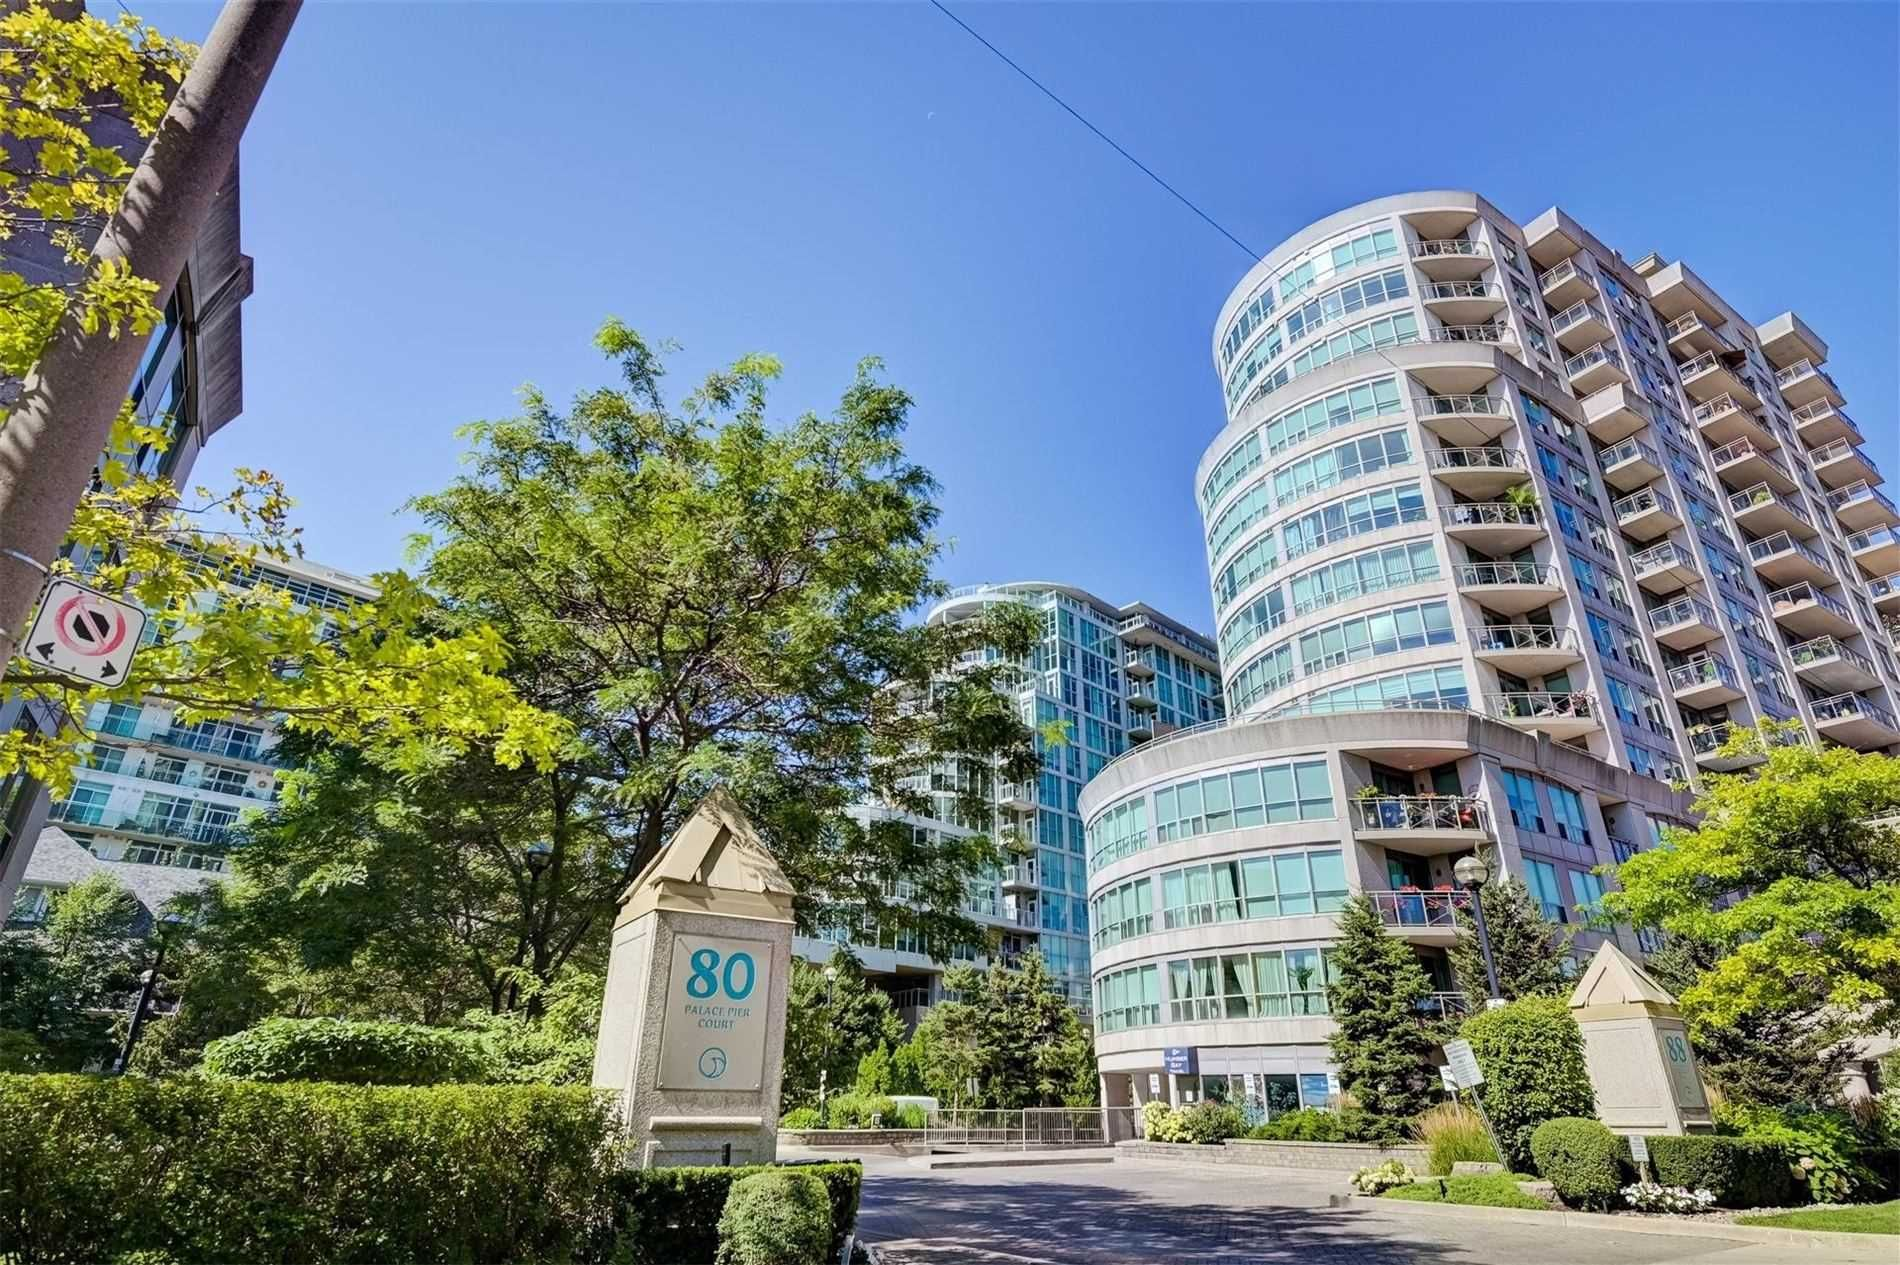 Main Photo: 201 80 Palace Pier Court in Toronto: Mimico Condo for lease (Toronto W06)  : MLS®# W4871604